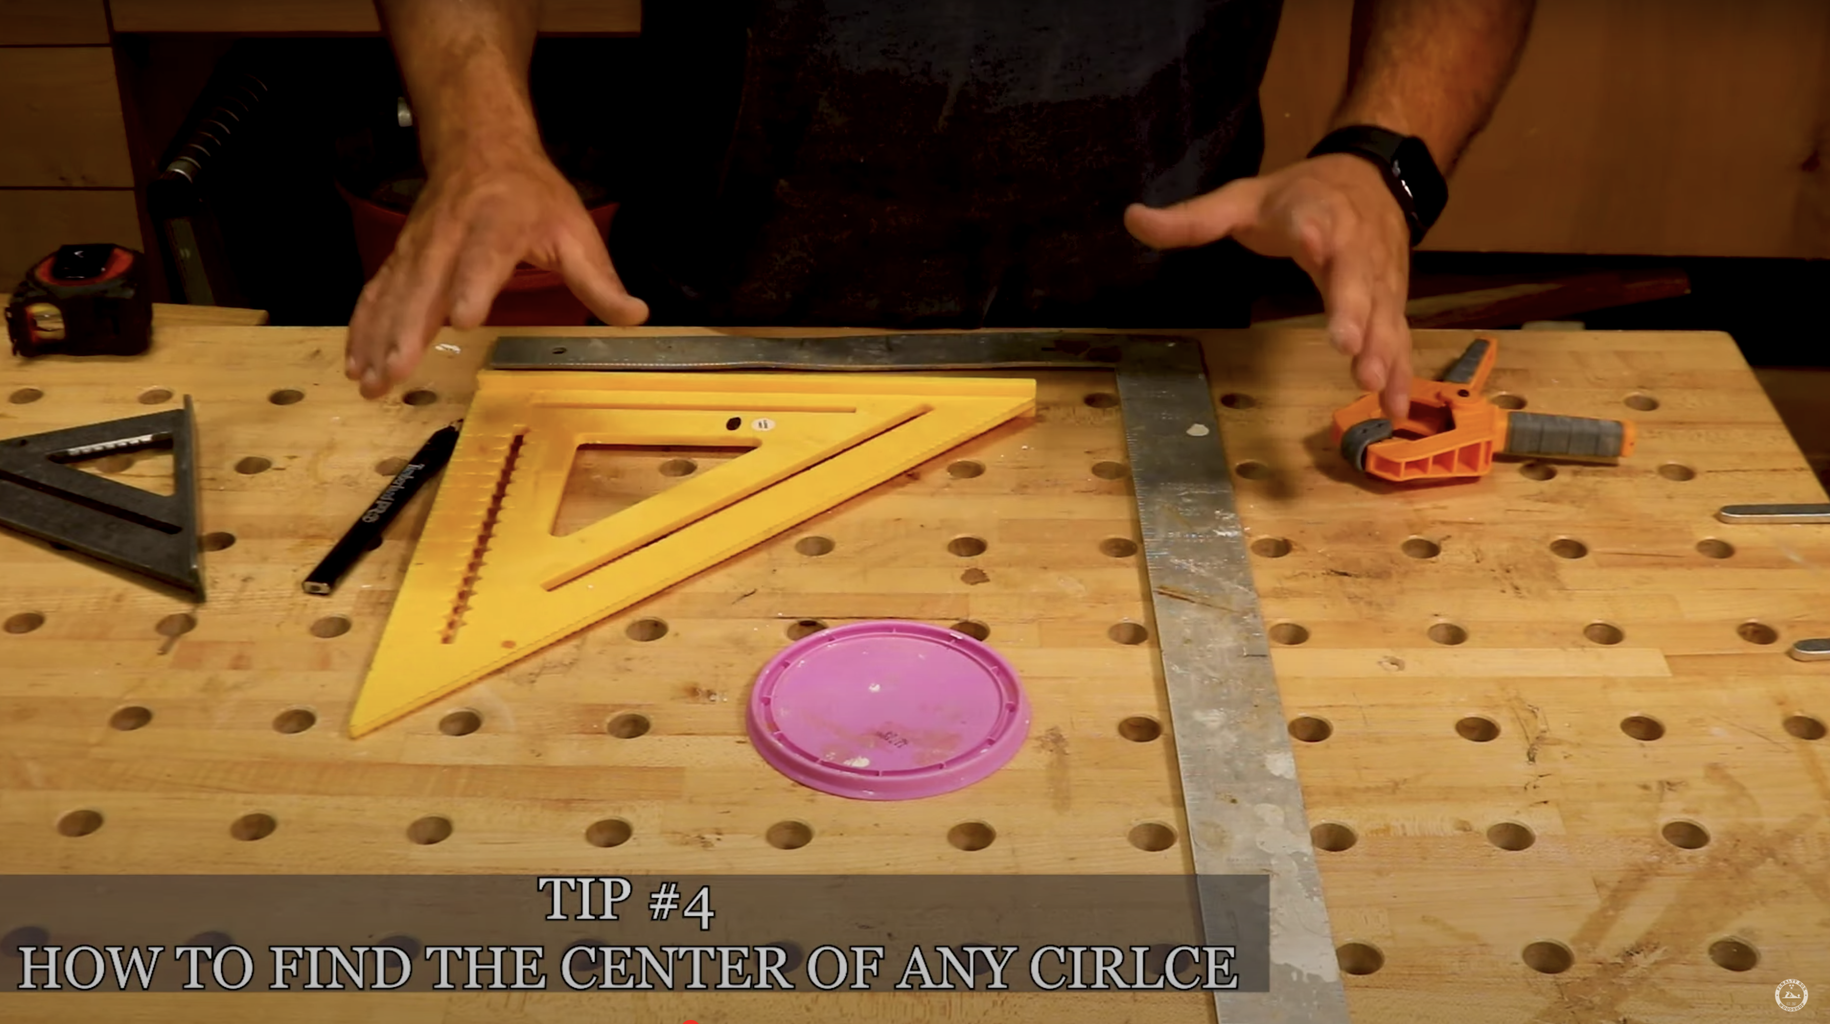 Tip #4 - Find the Center of Any Circle